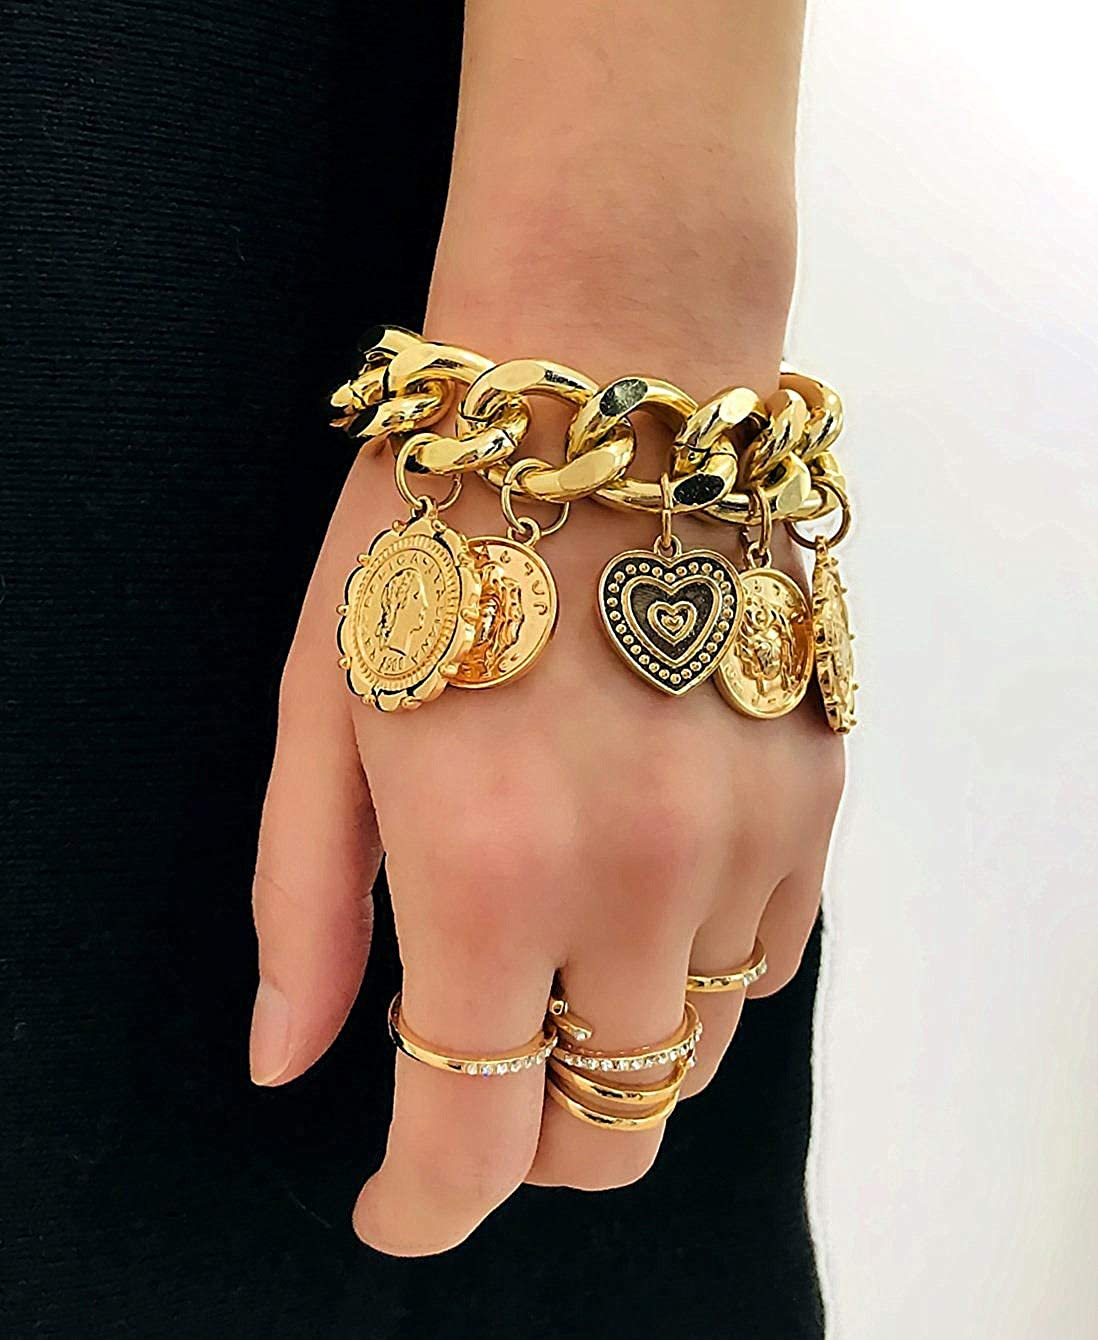 Layered Stackable Open Cuff Bangle Bracelets Set for Women Teen Girls Gift Y/&M Religious Link Bracelet